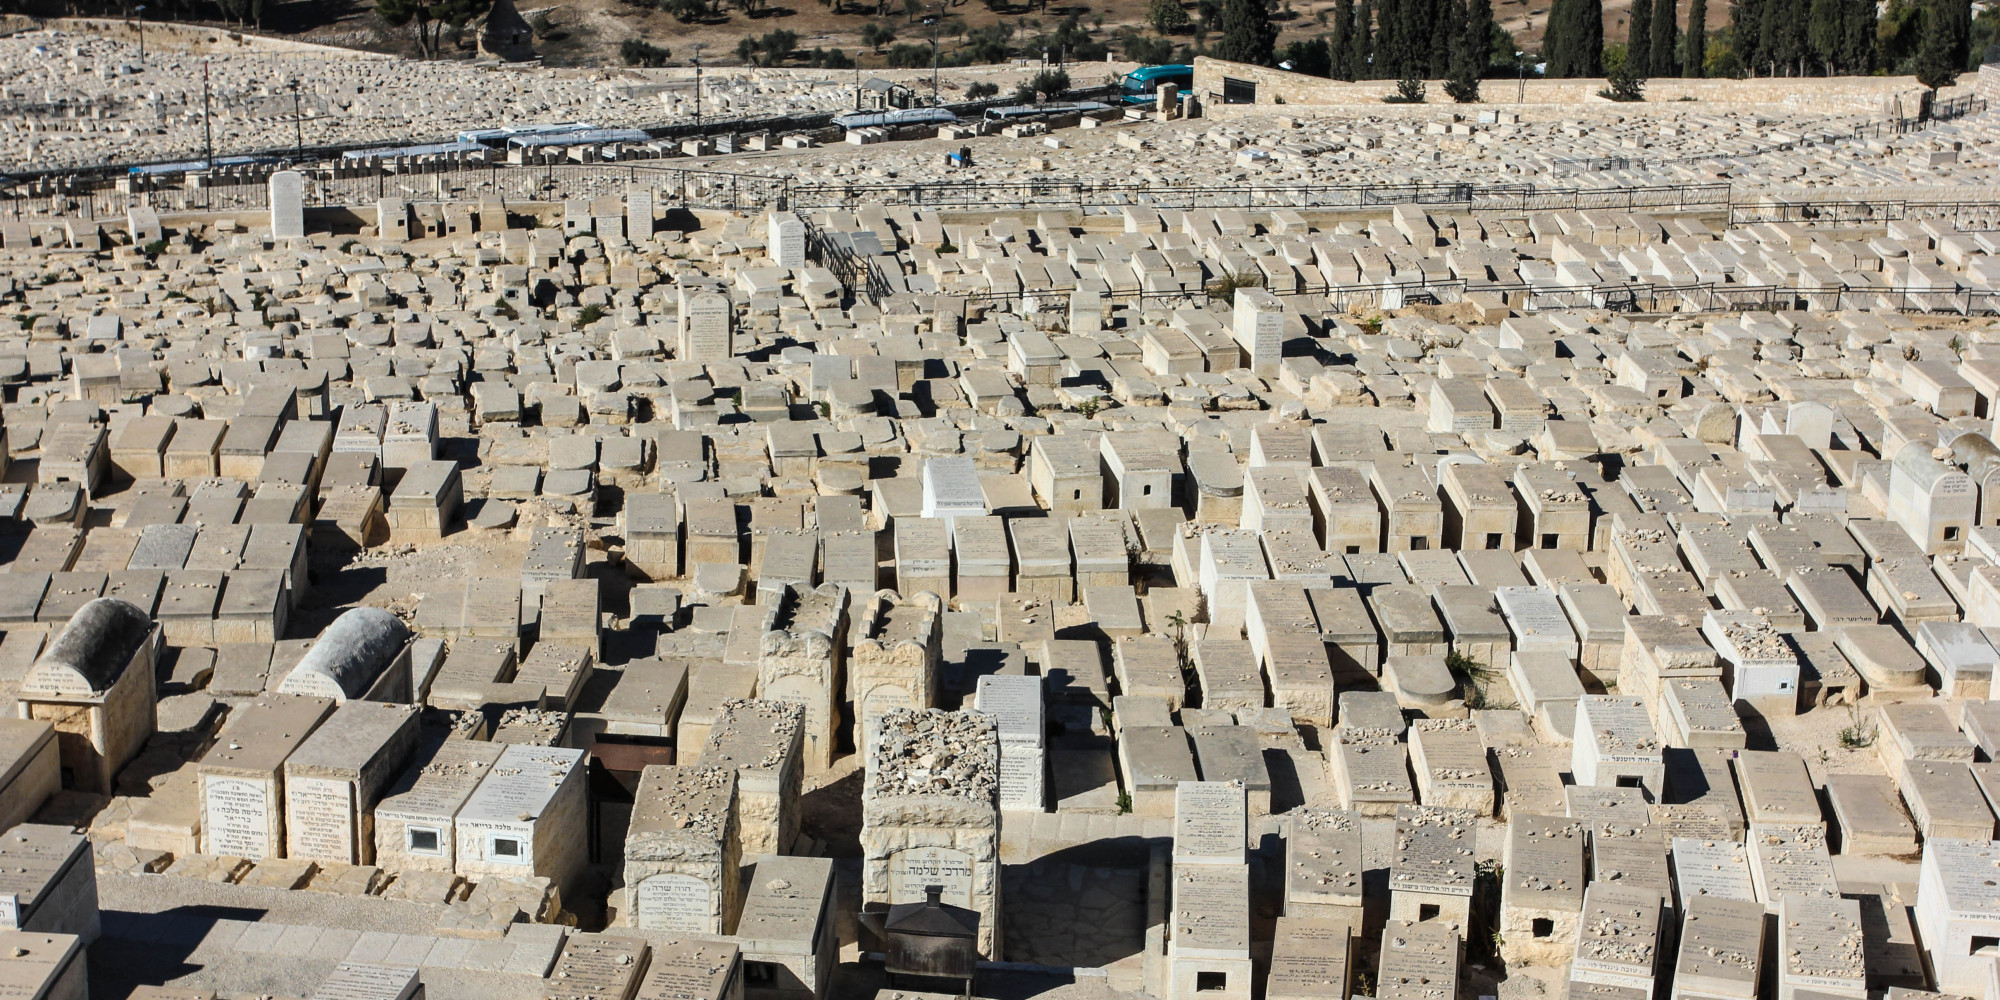 Israel: Above-Ground Burial Structure Stands Empty As Burial Crisis Increases